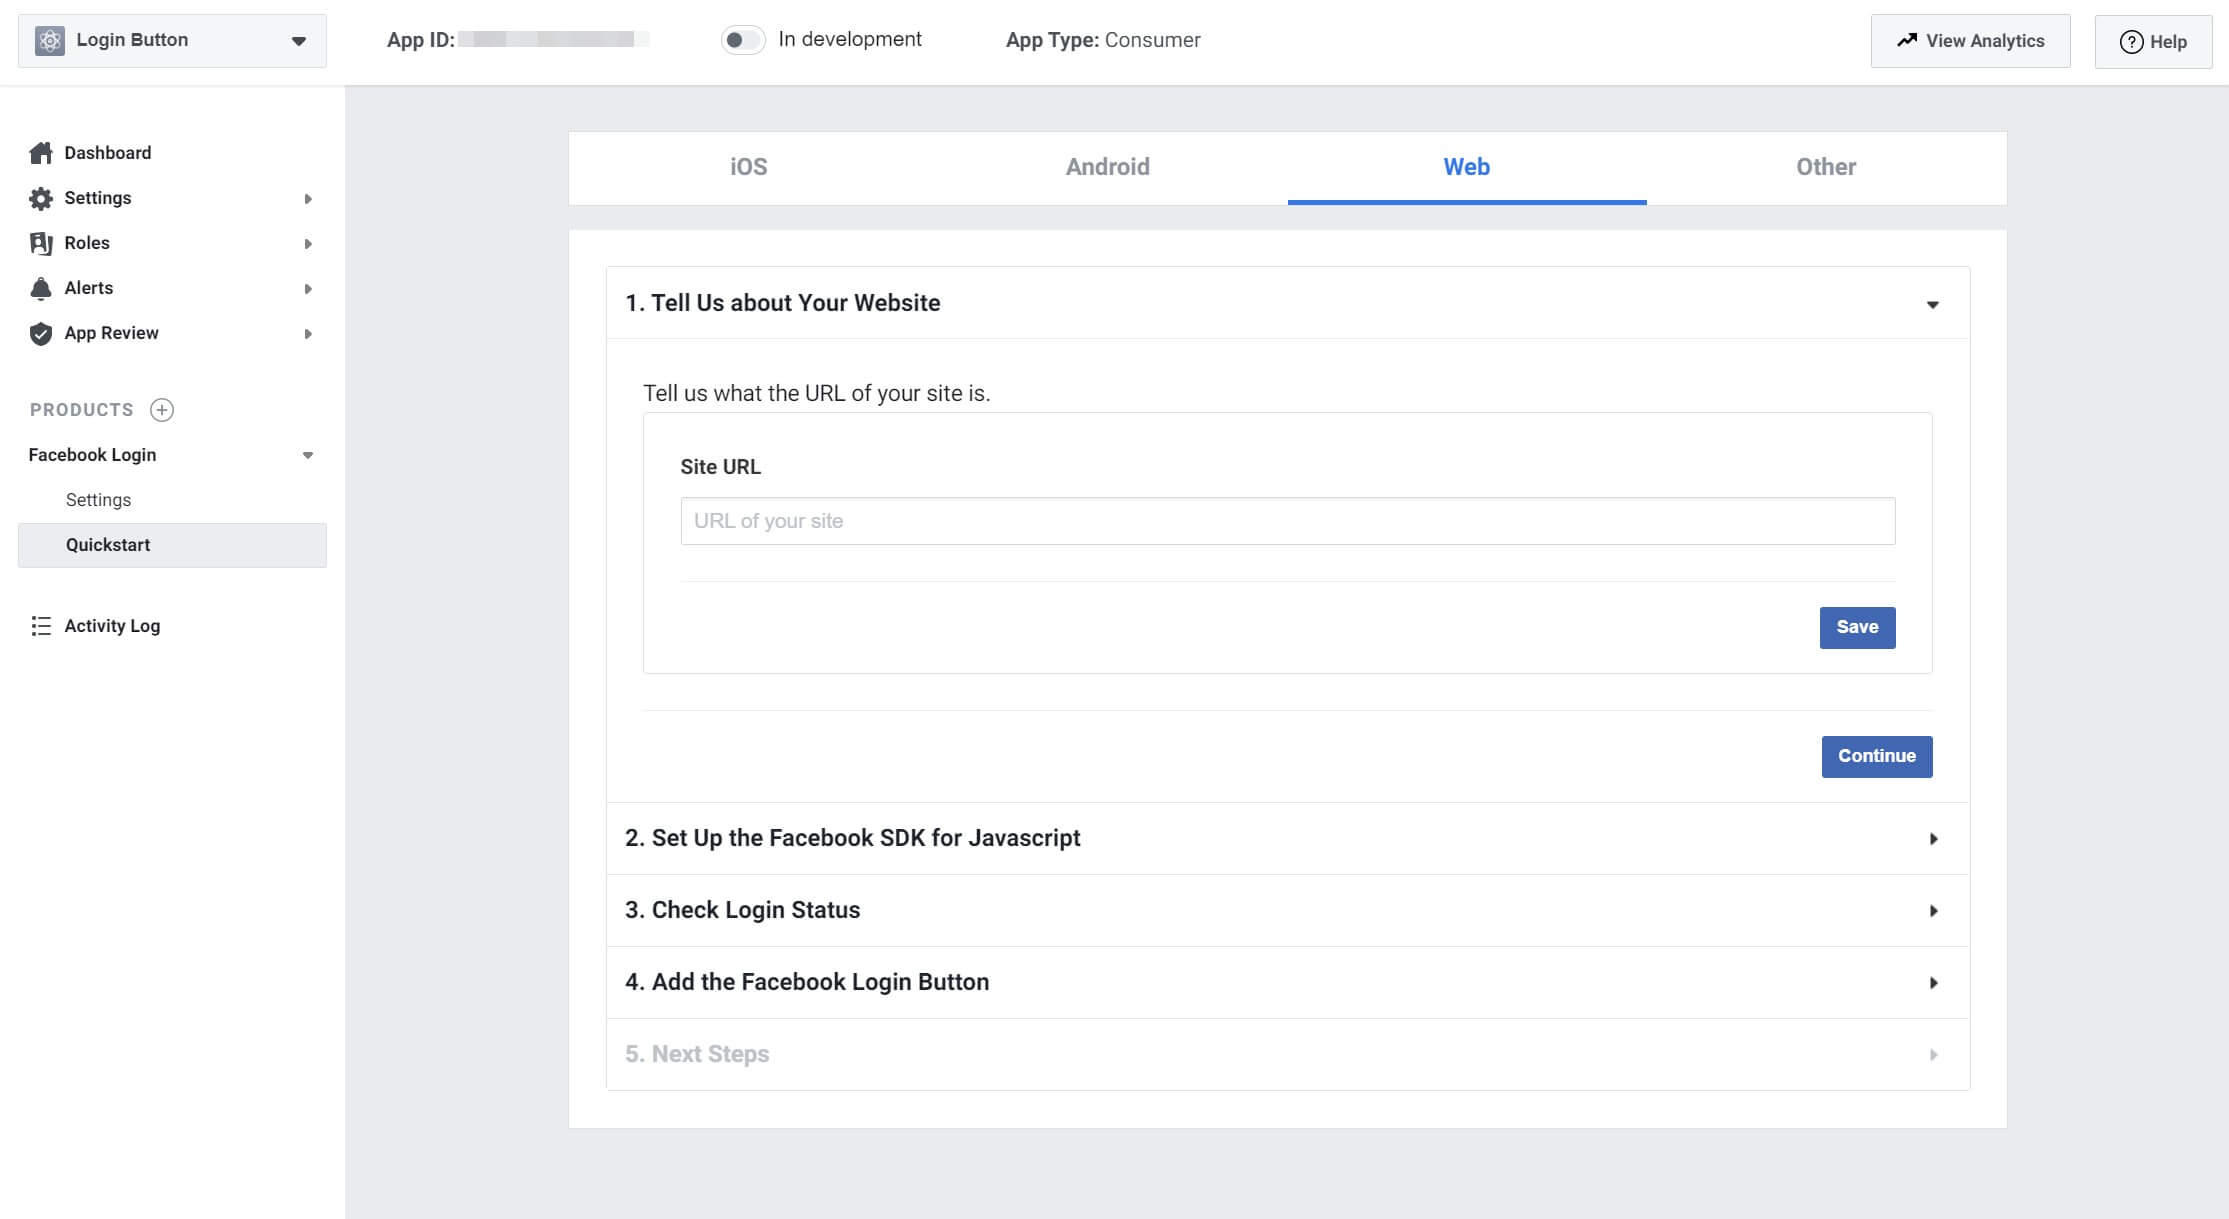 The wizard for creating your Facebook login button.